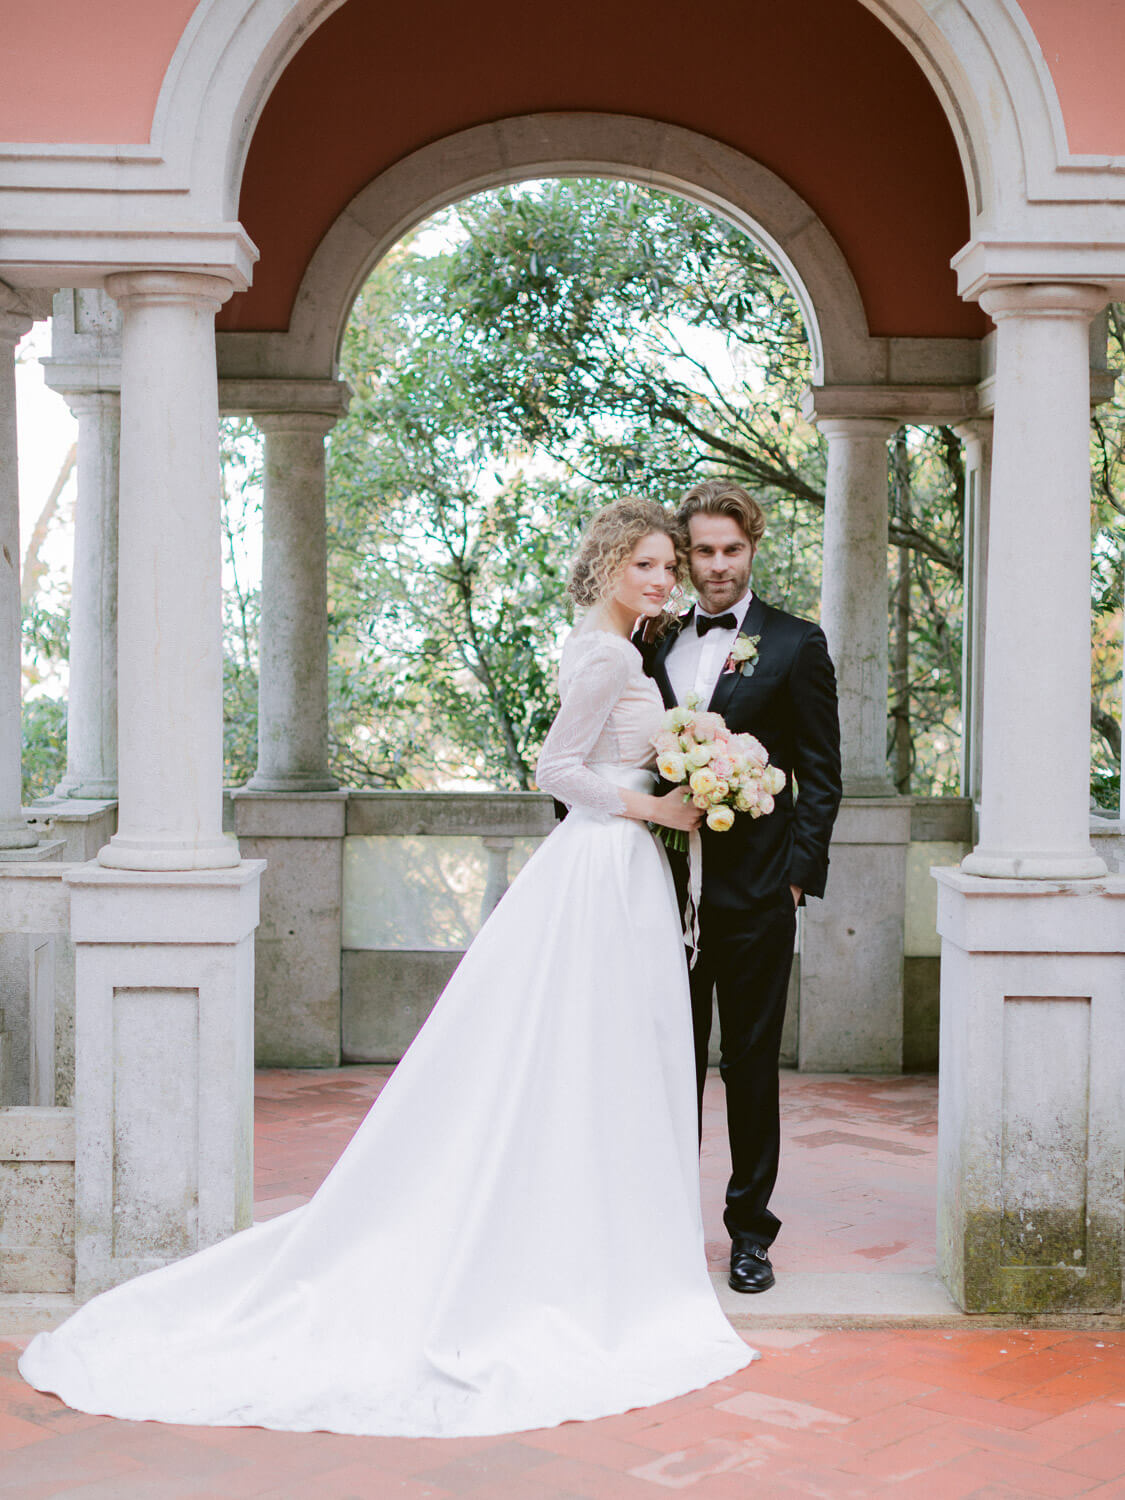 romantic bride and groom portrait framed by Casa dos Penedos arcades by Portugal Wedding Photographer